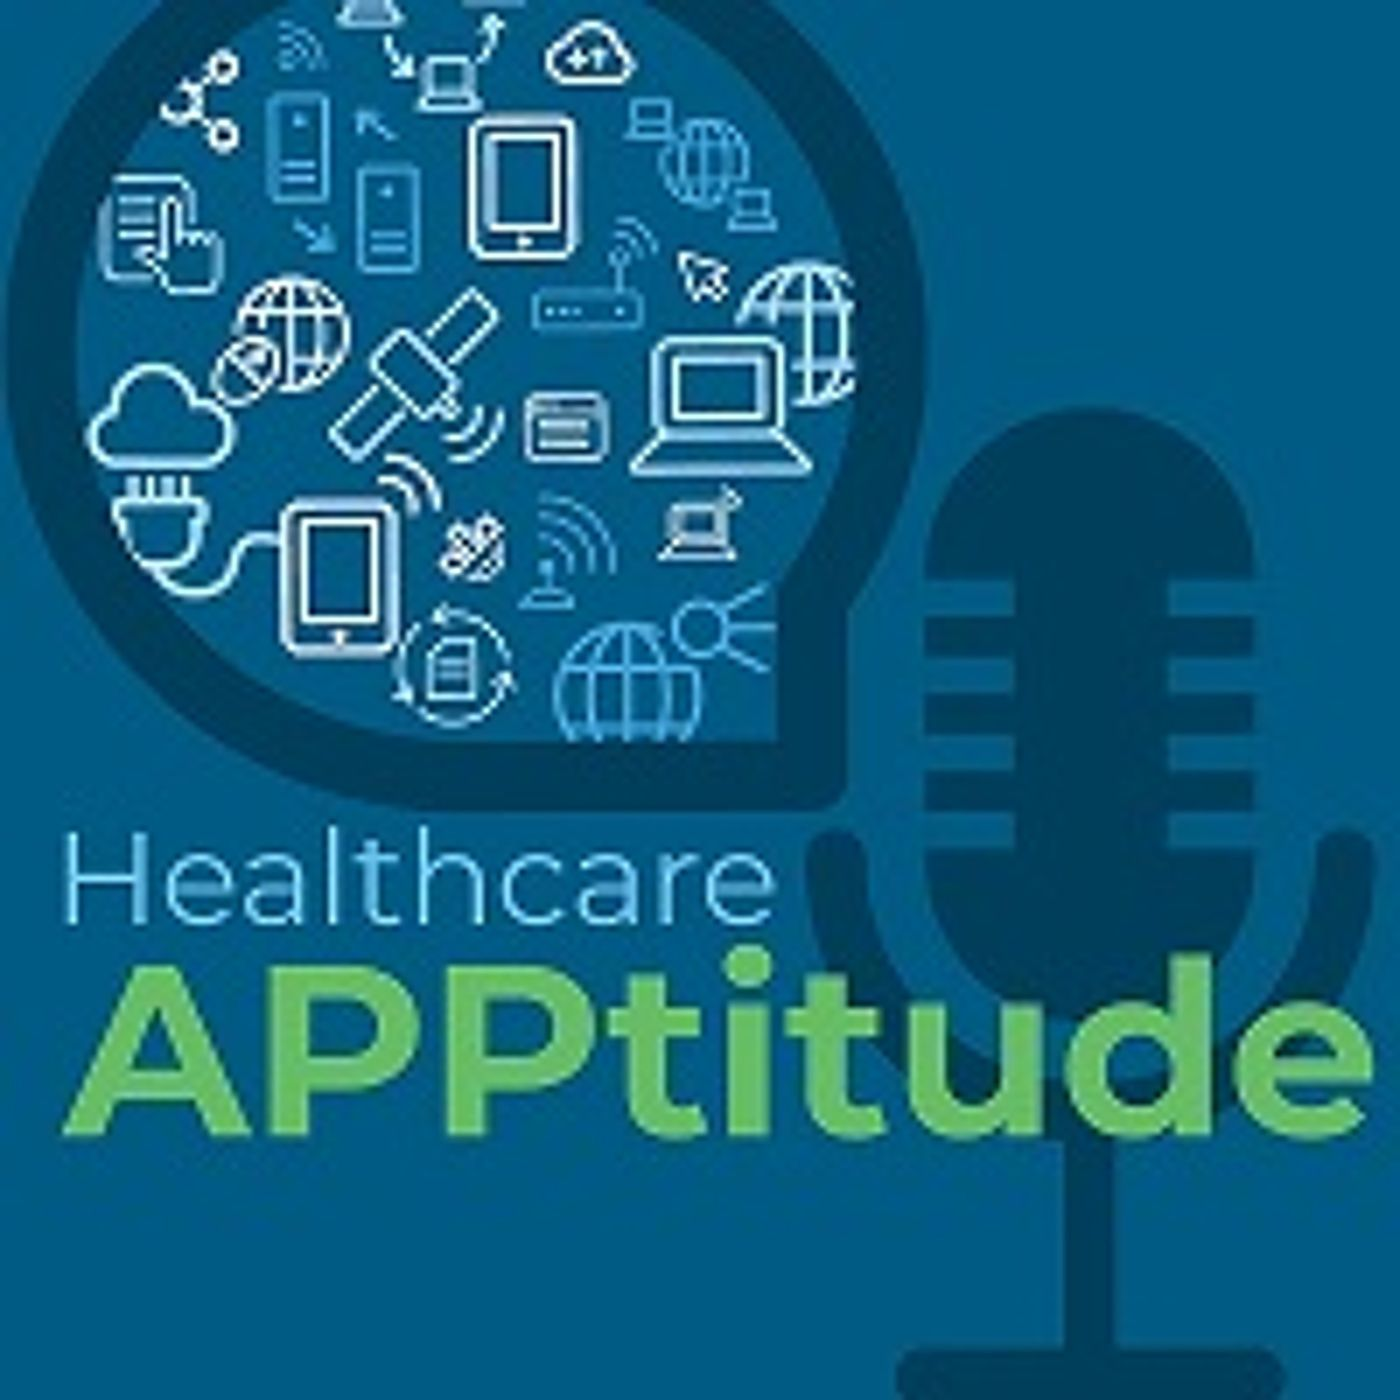 Healthcare APPtitude: Les Jordan, Chief Product and Strategy Officer